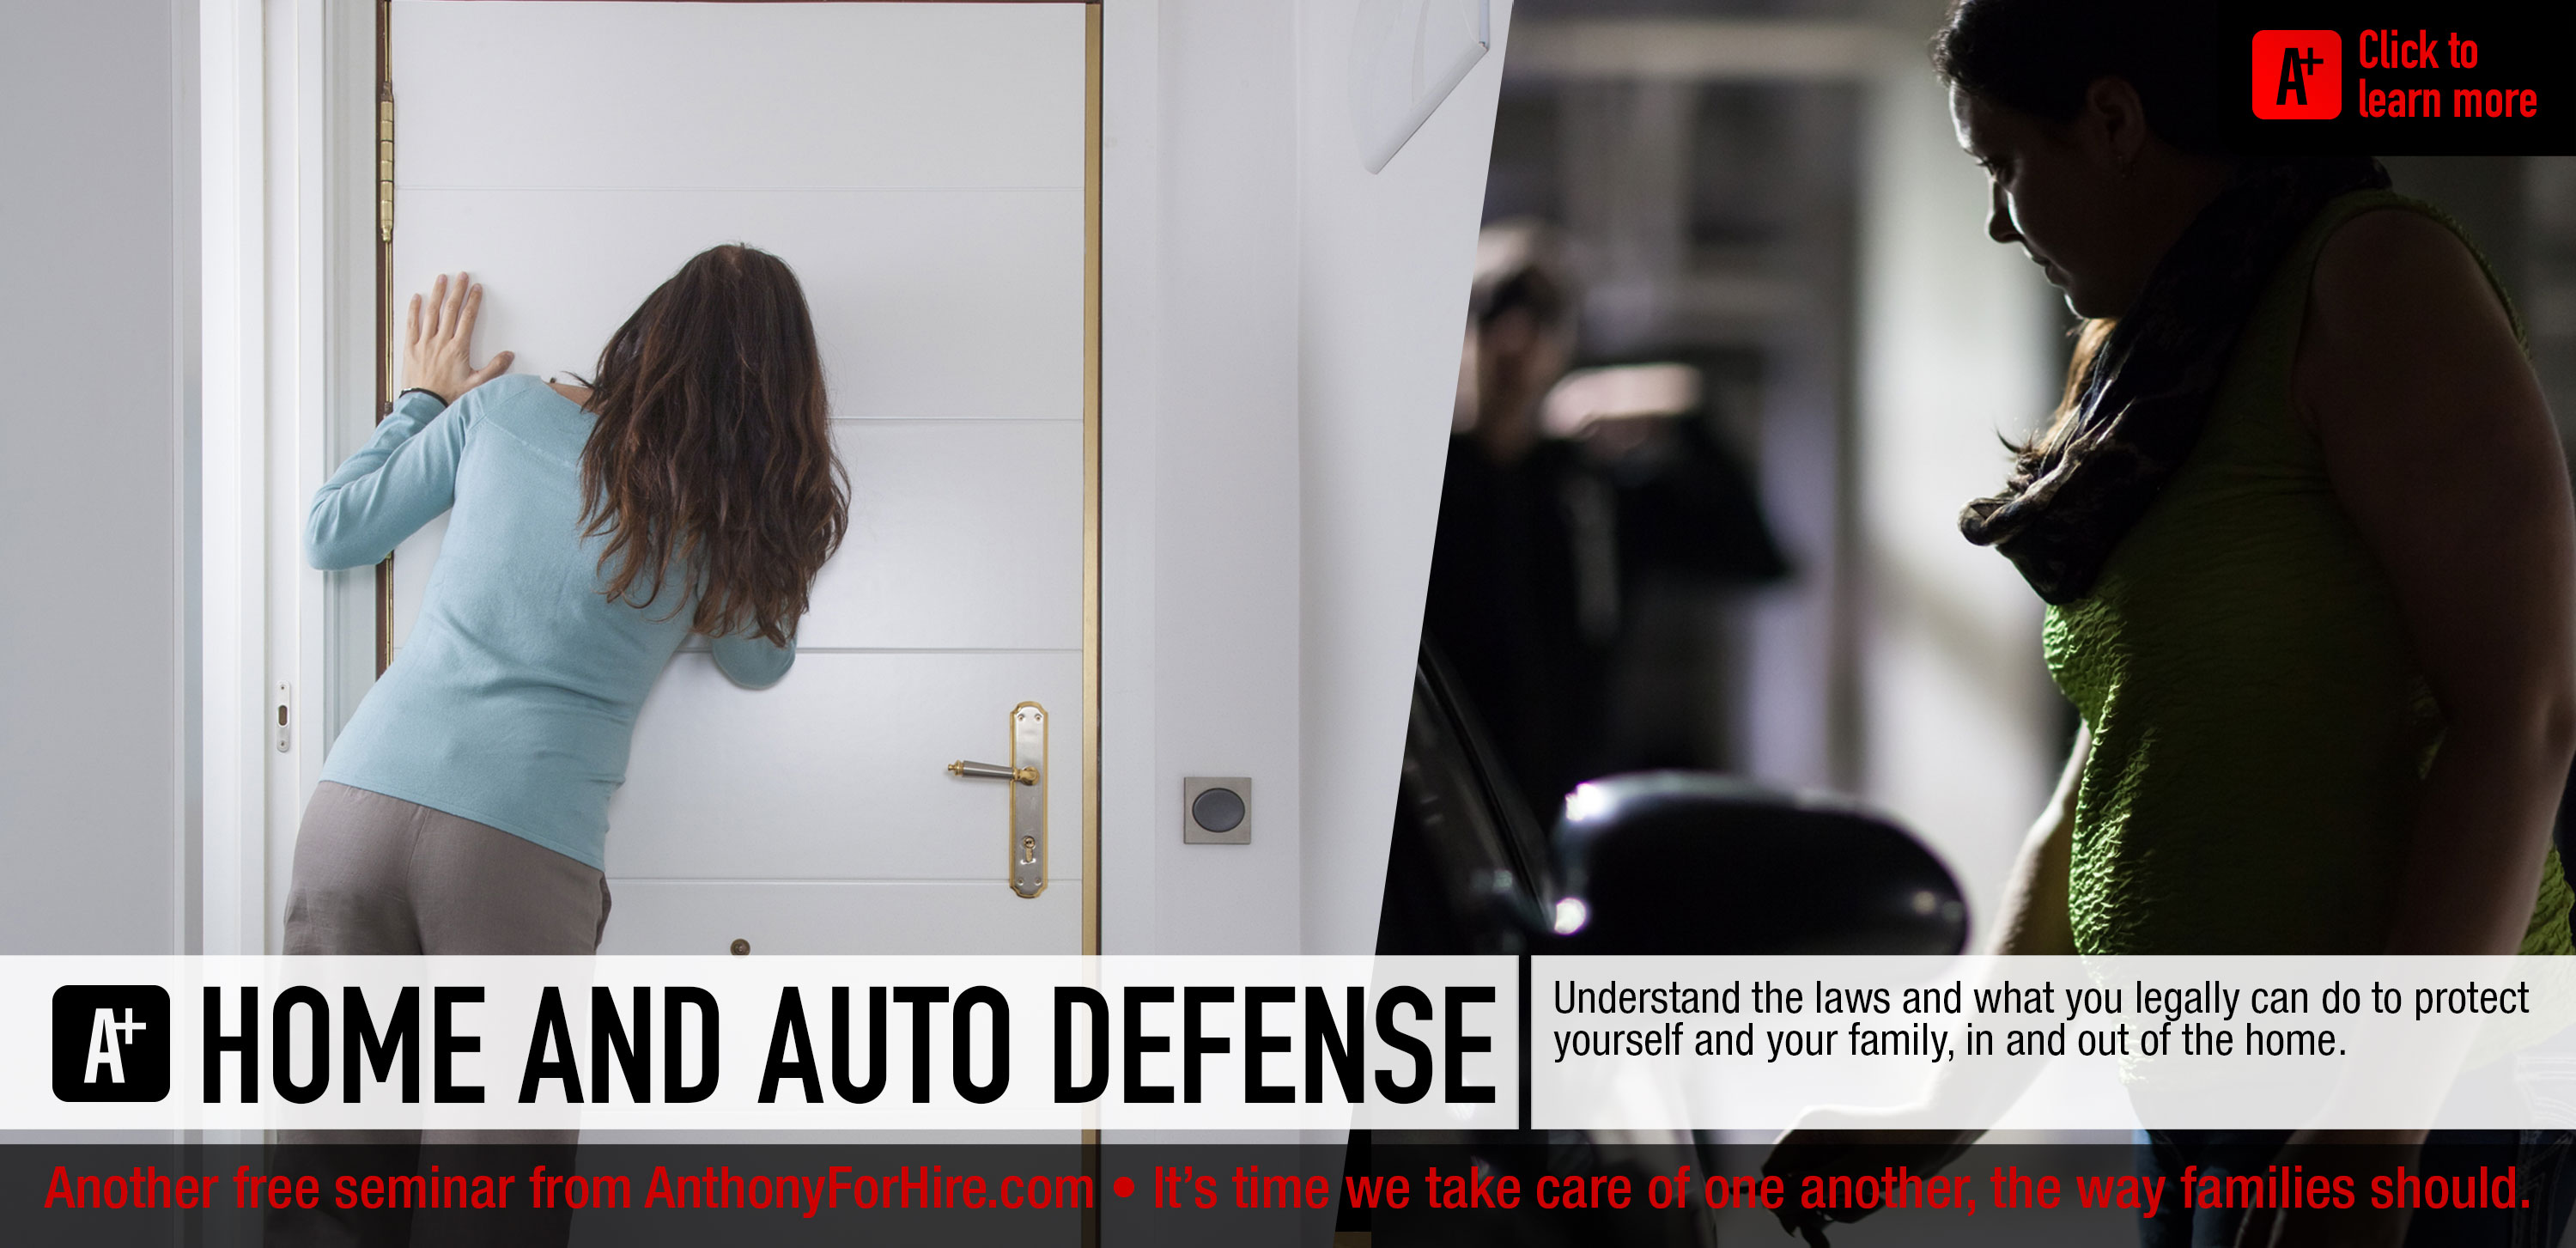 Home and auto defense - education